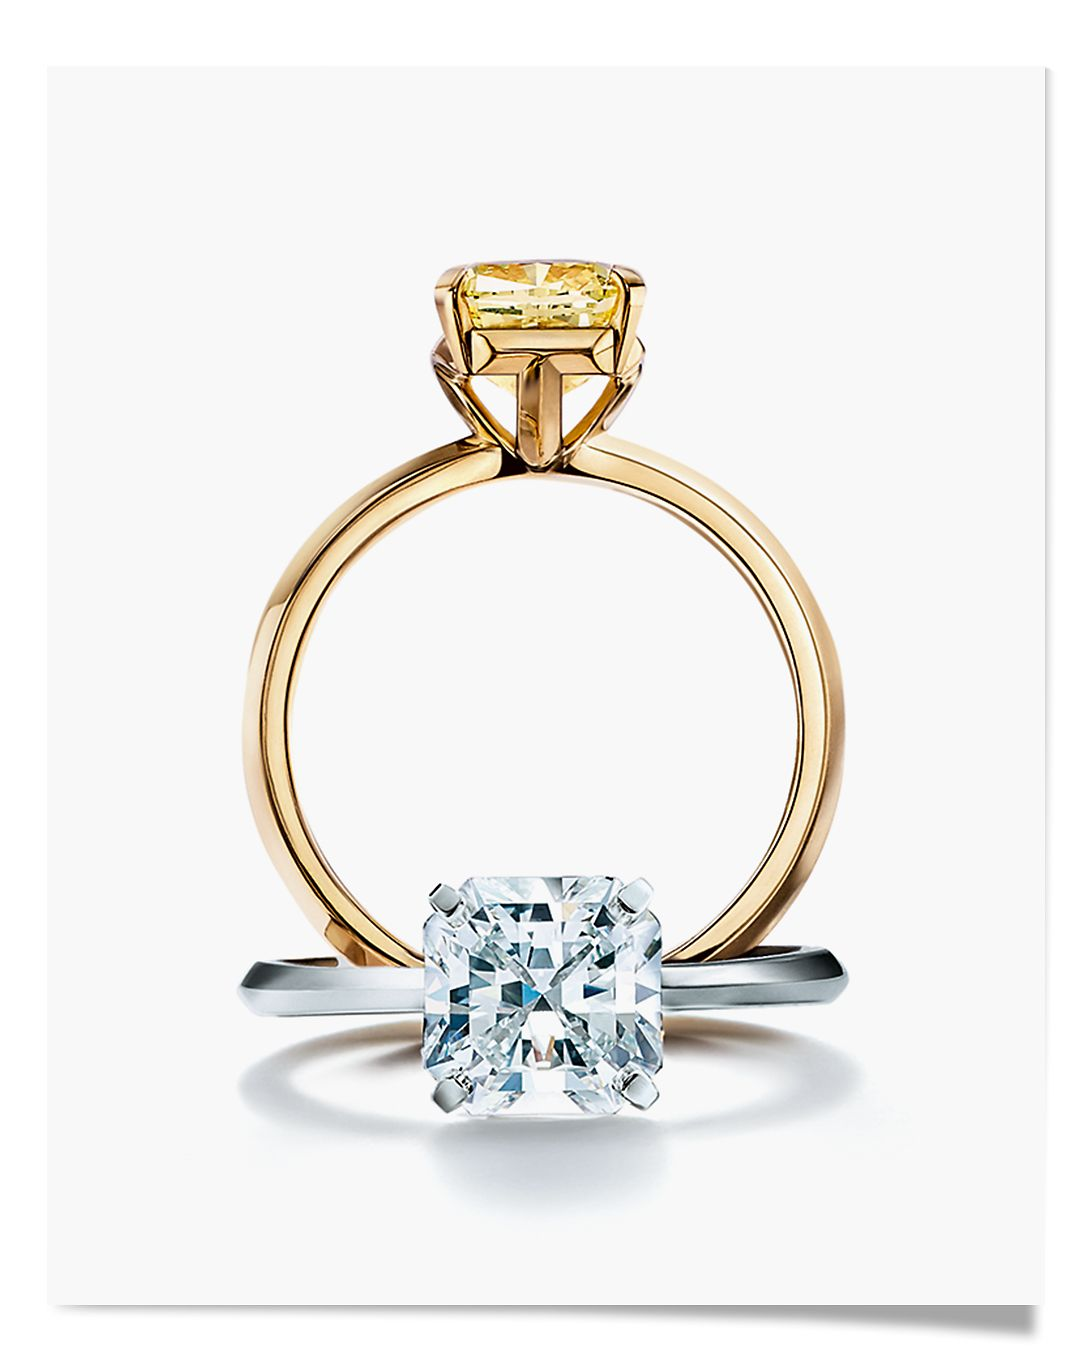 af2897b9e5661 Love & Engagement | Tiffany & Co.